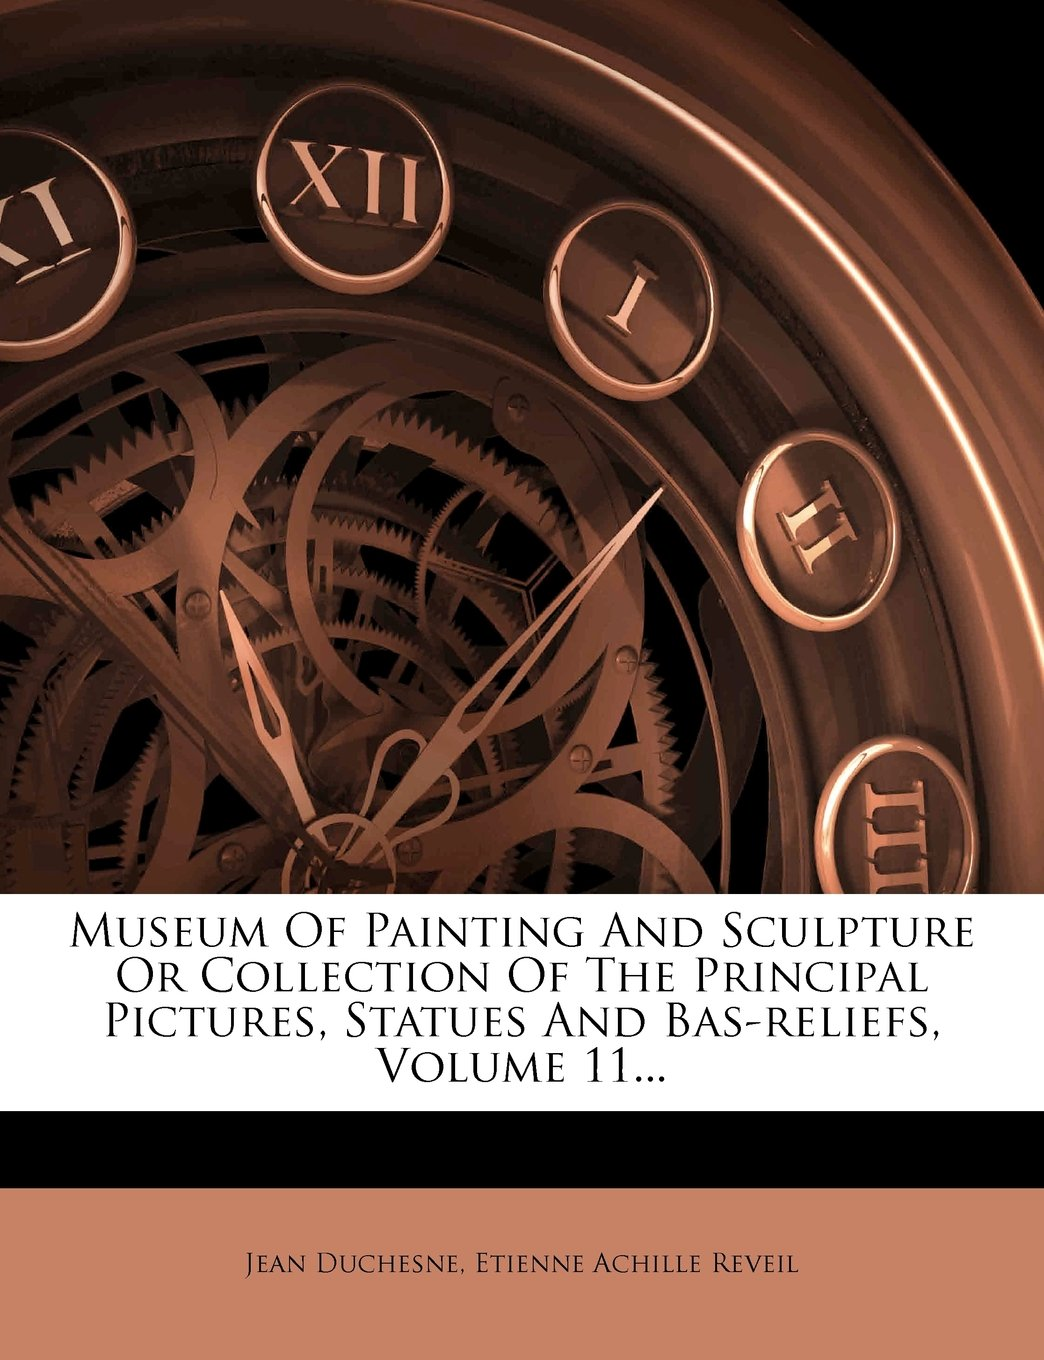 Museum Of Painting And Sculpture Or Collection Of The Principal Pictures, Statues And Bas-reliefs, Volume 11... (French Edition) pdf